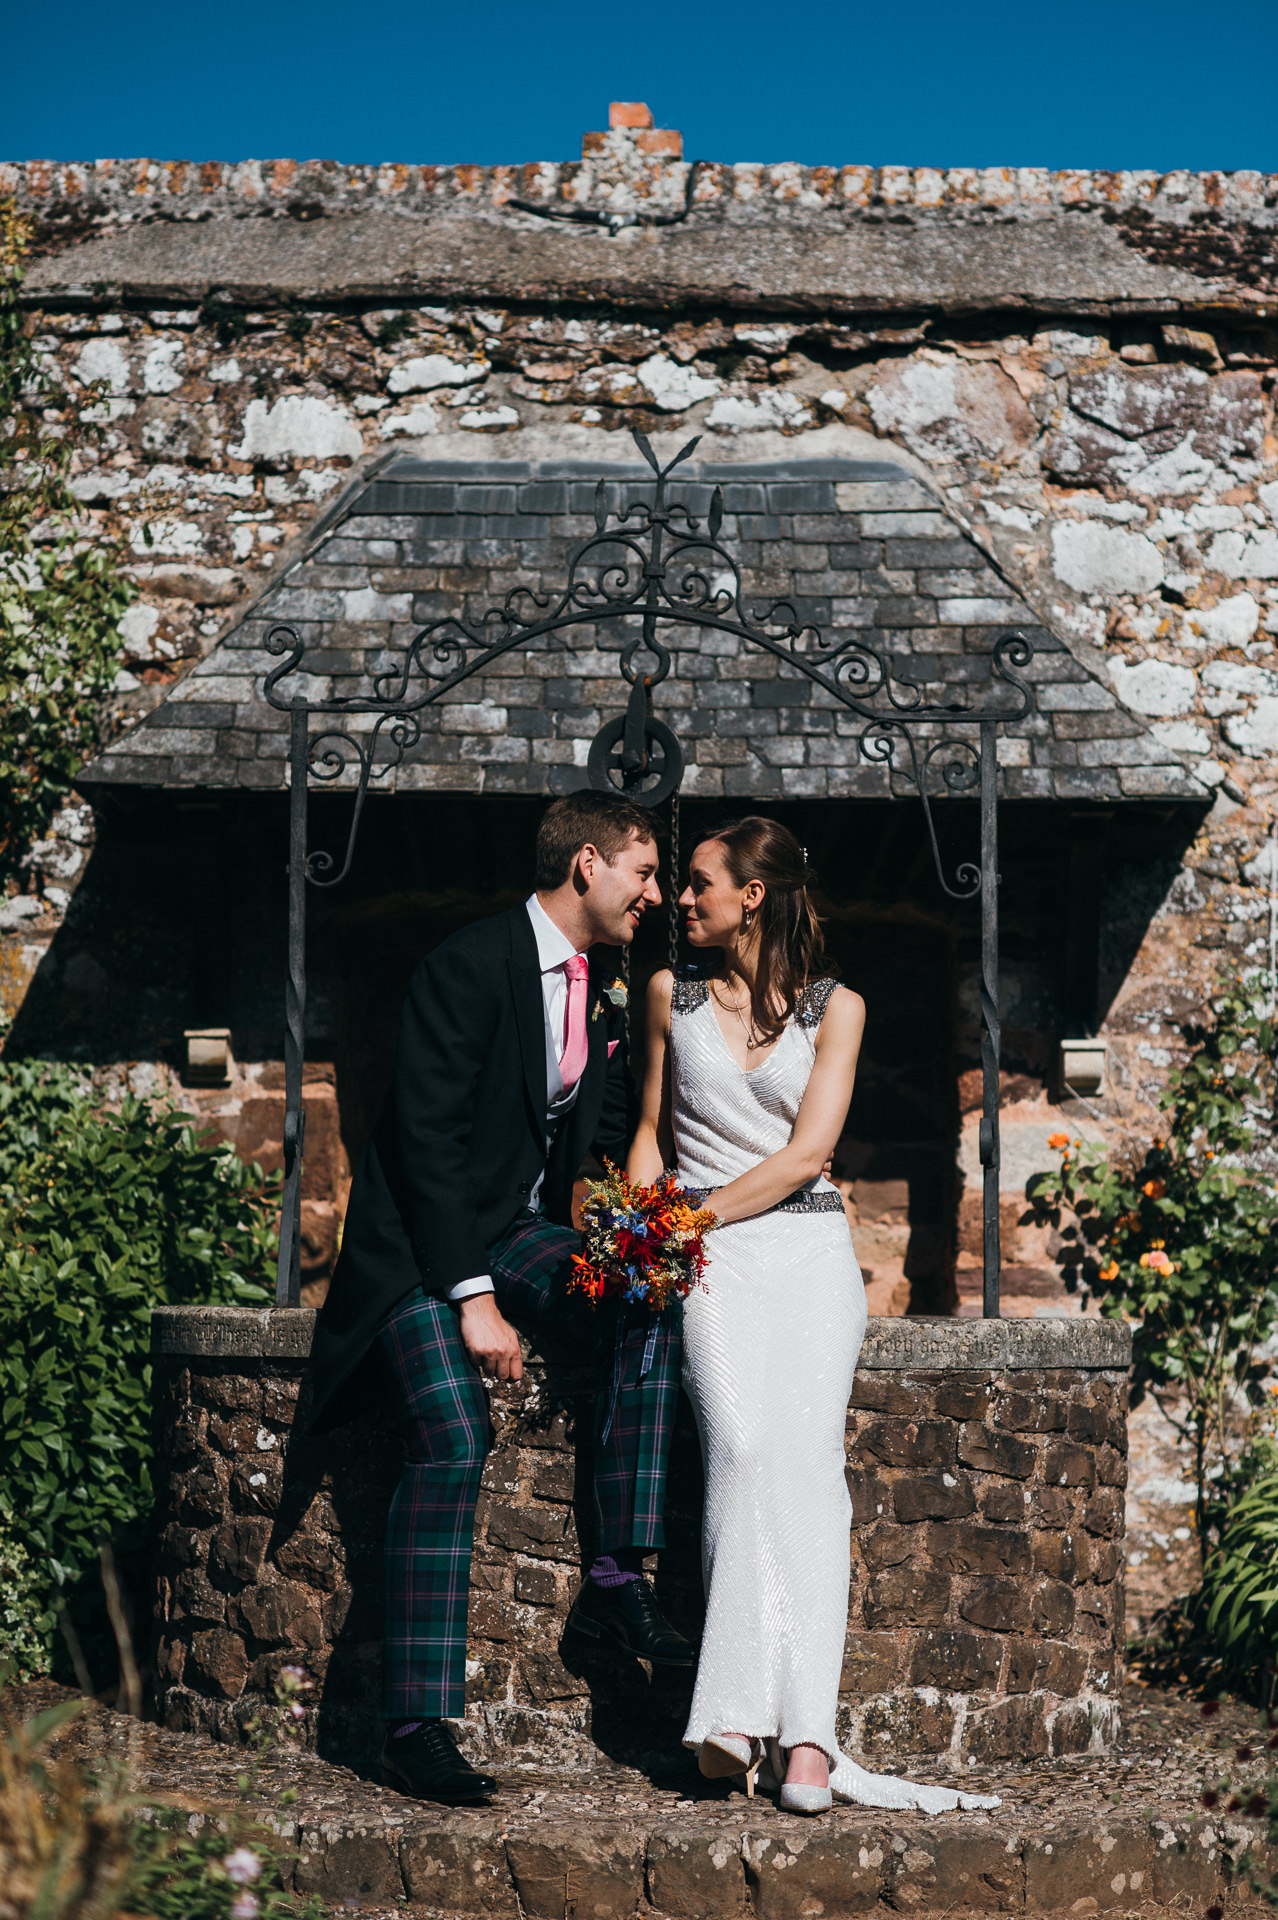 Wedding photographer Dunster Tithe Barn